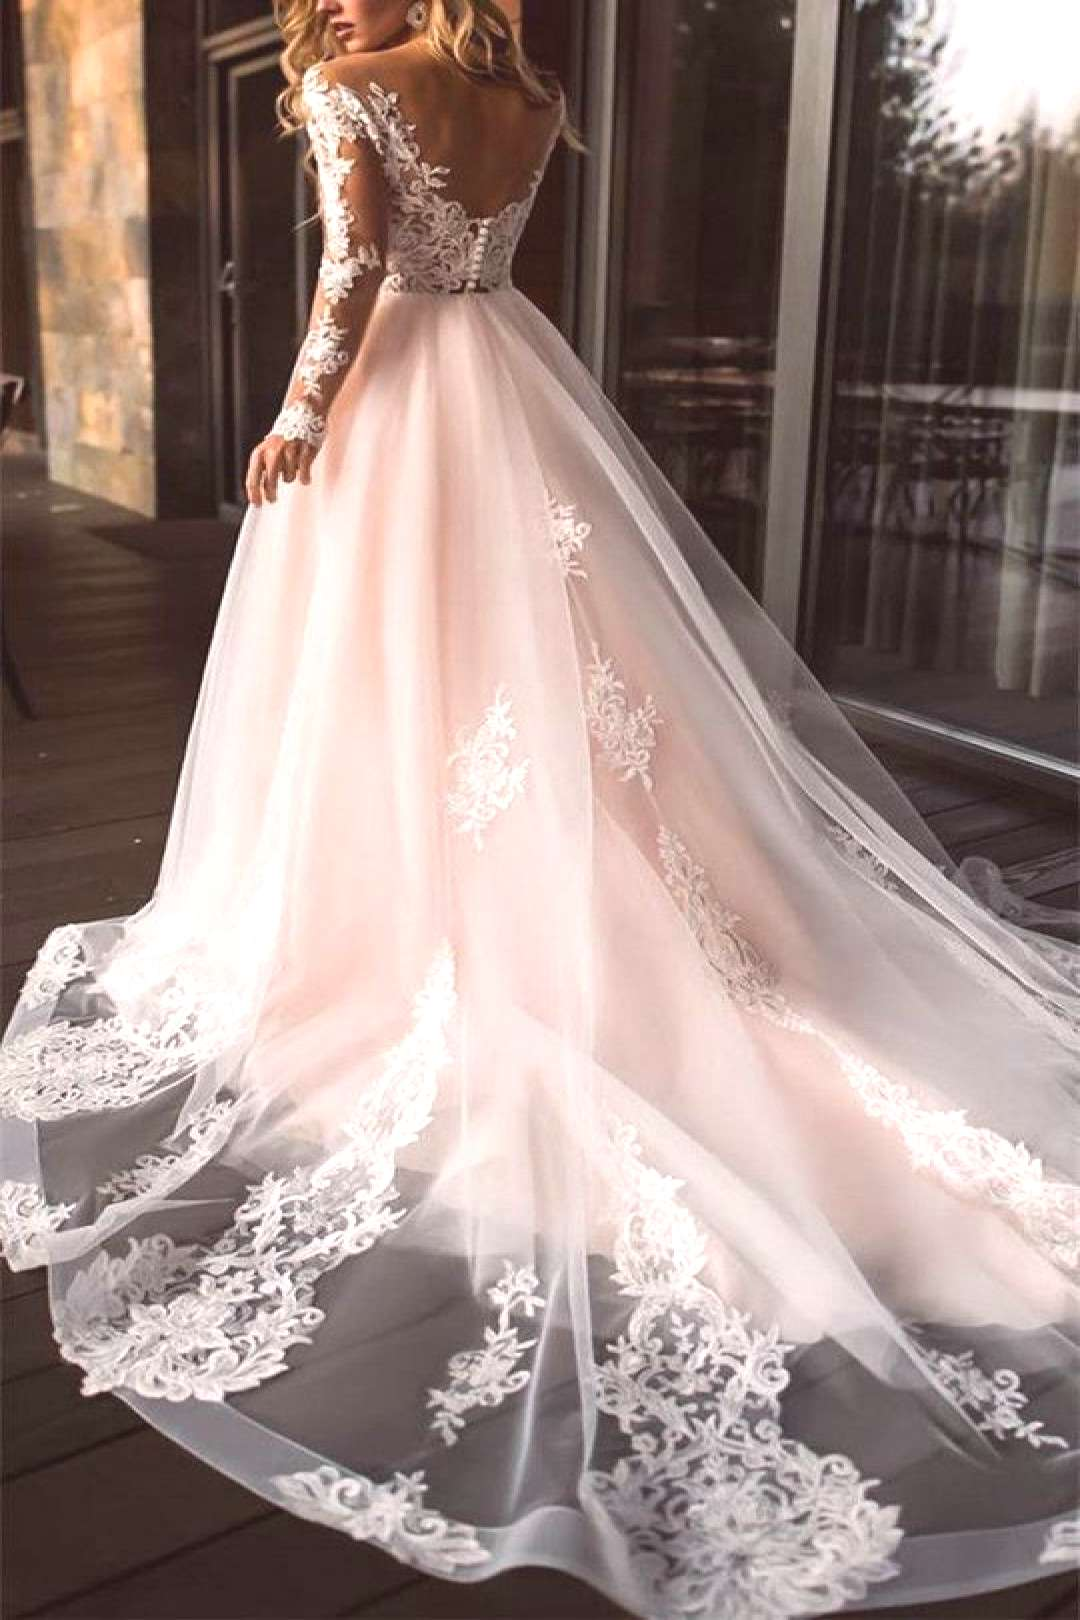 +51 Untold Stories on Dream Wedding Dress Lace Open Backs Long Sleeve You Need to Read or Be Left O